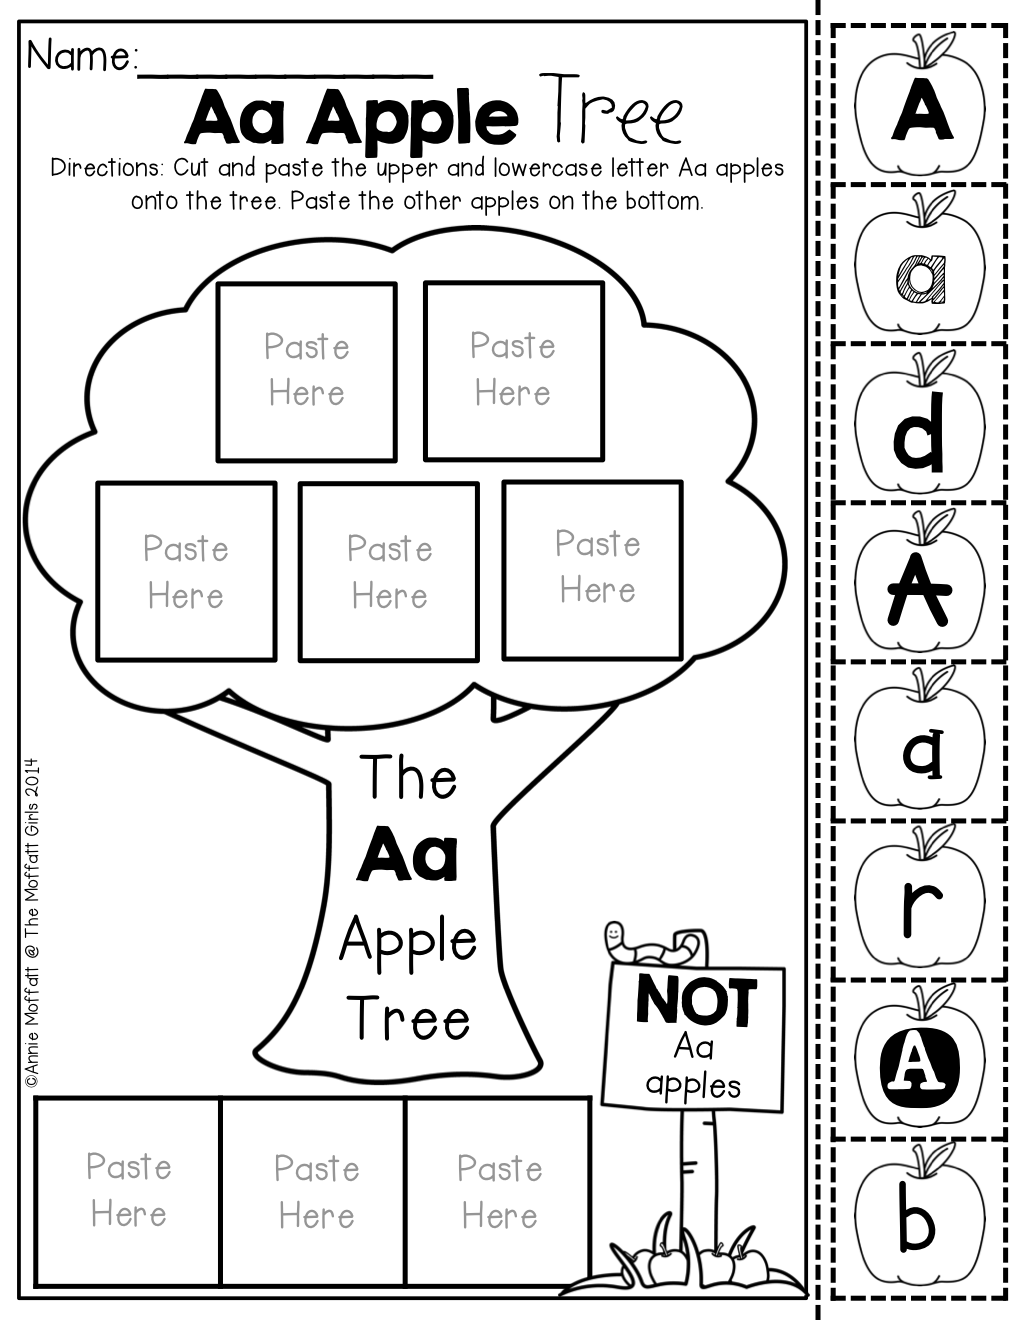 cut and paste and letters to the correct spots love the different fonts help students read and recognize letters in a variety of printed and published